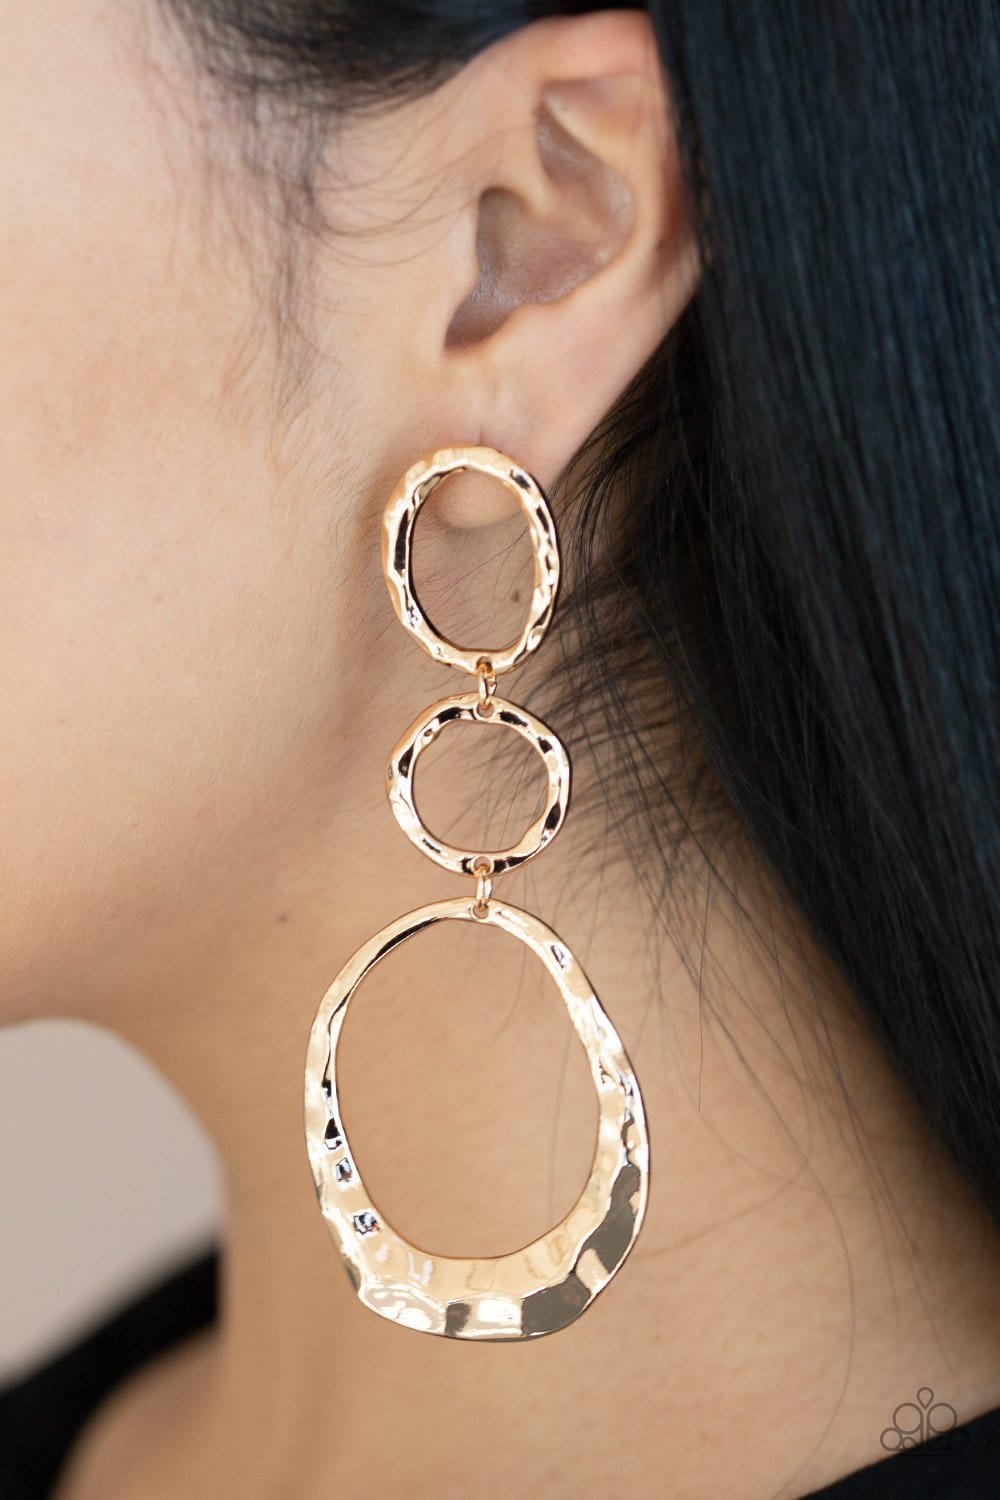 Paparazzi: Radically Rippled - Gold Hoop Earrings - Jewels N' Thingz Boutique